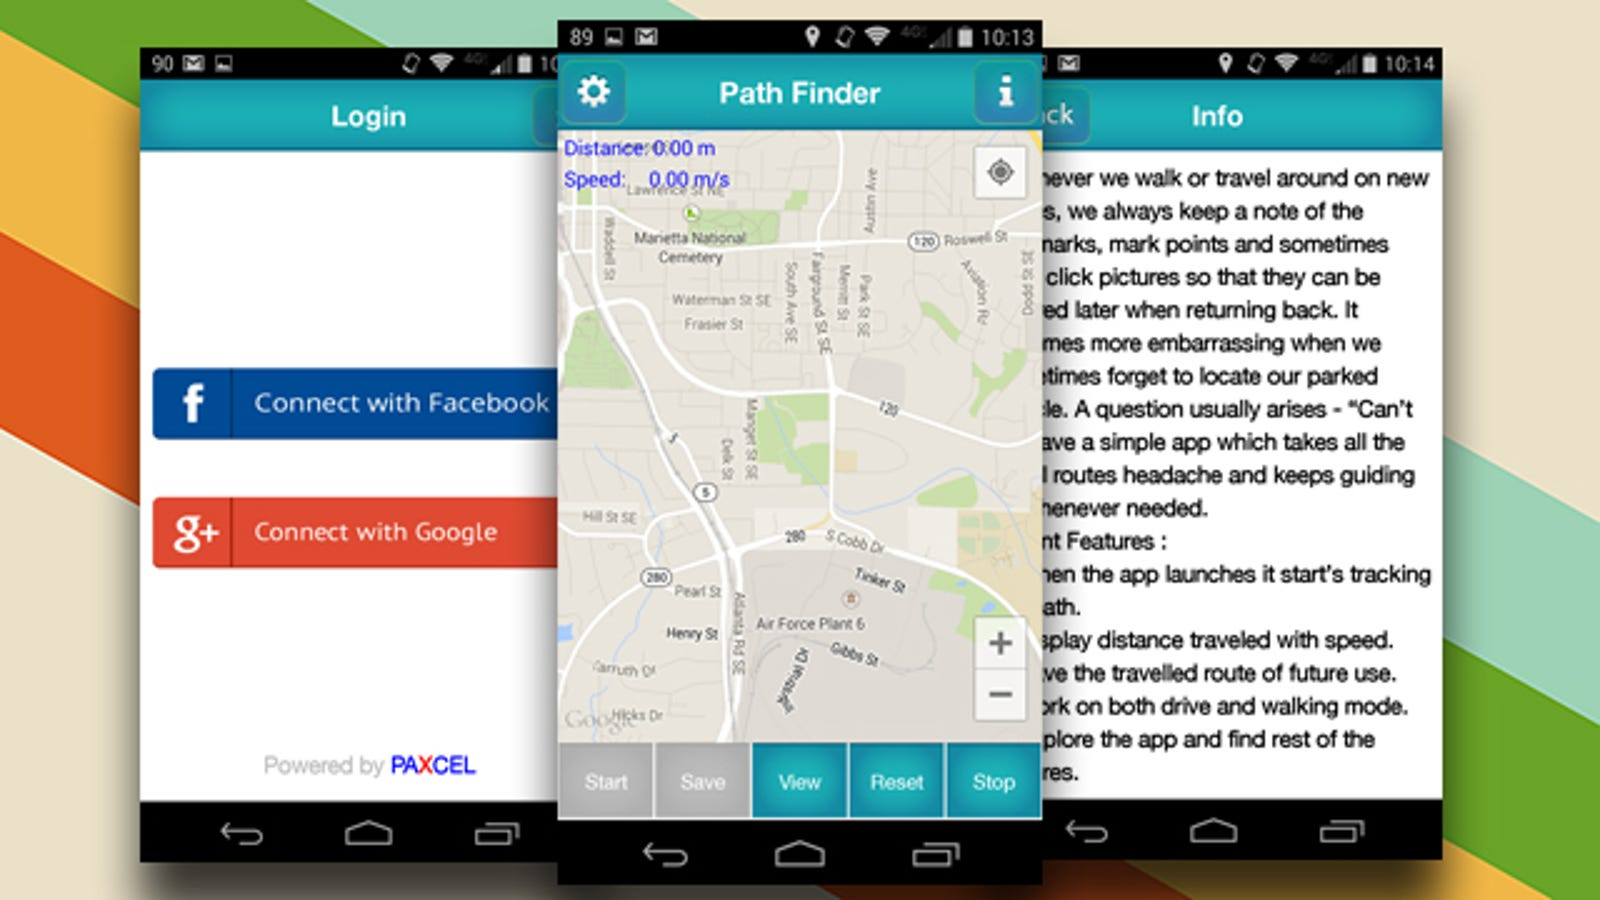 Path Finder Helps You Find Your Way Back When You Go Somewhere New